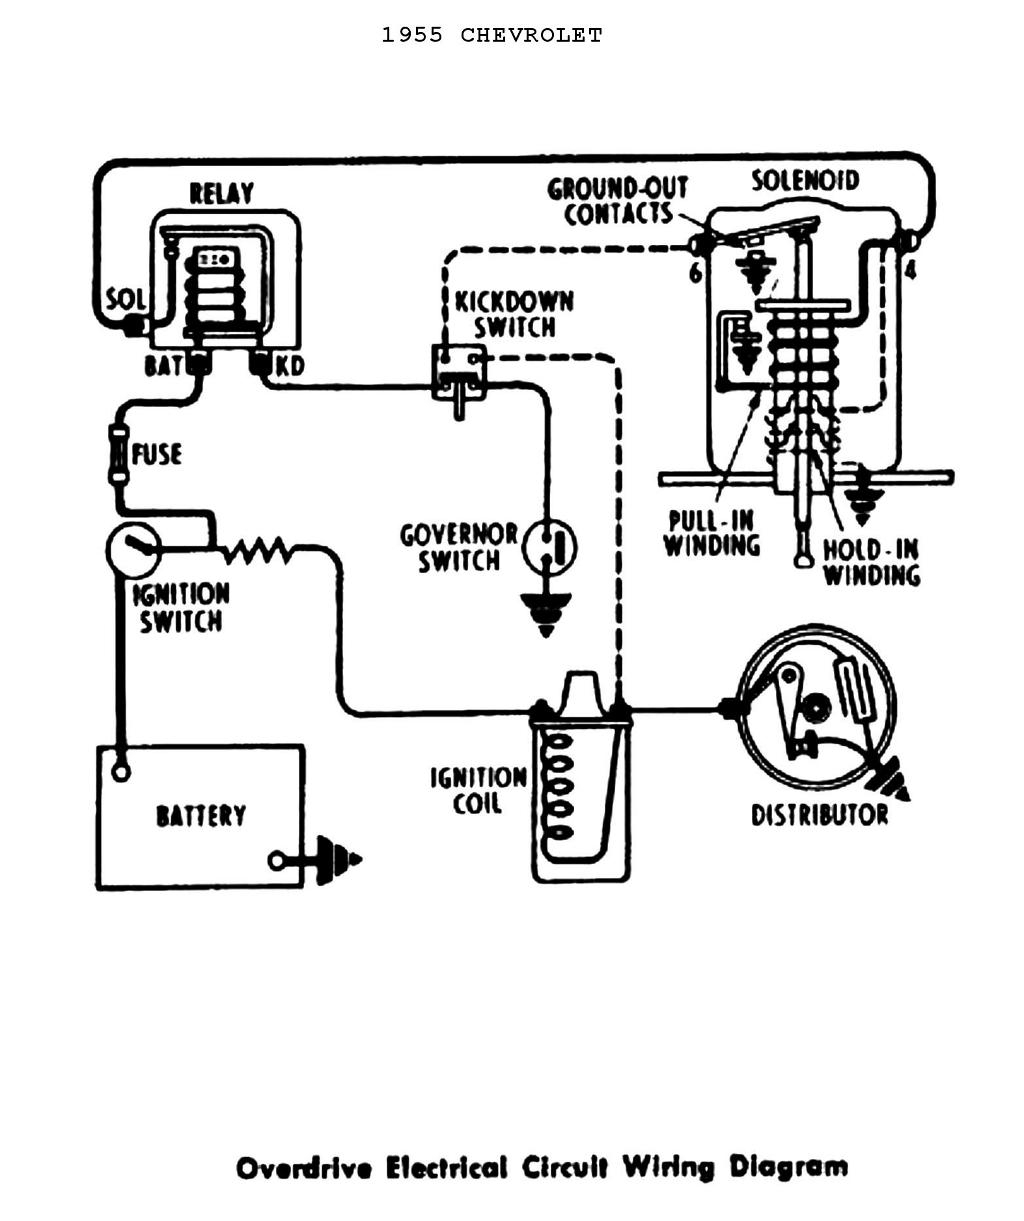 Ford 3000 Tractor Ignition Switch Wiring Diagram